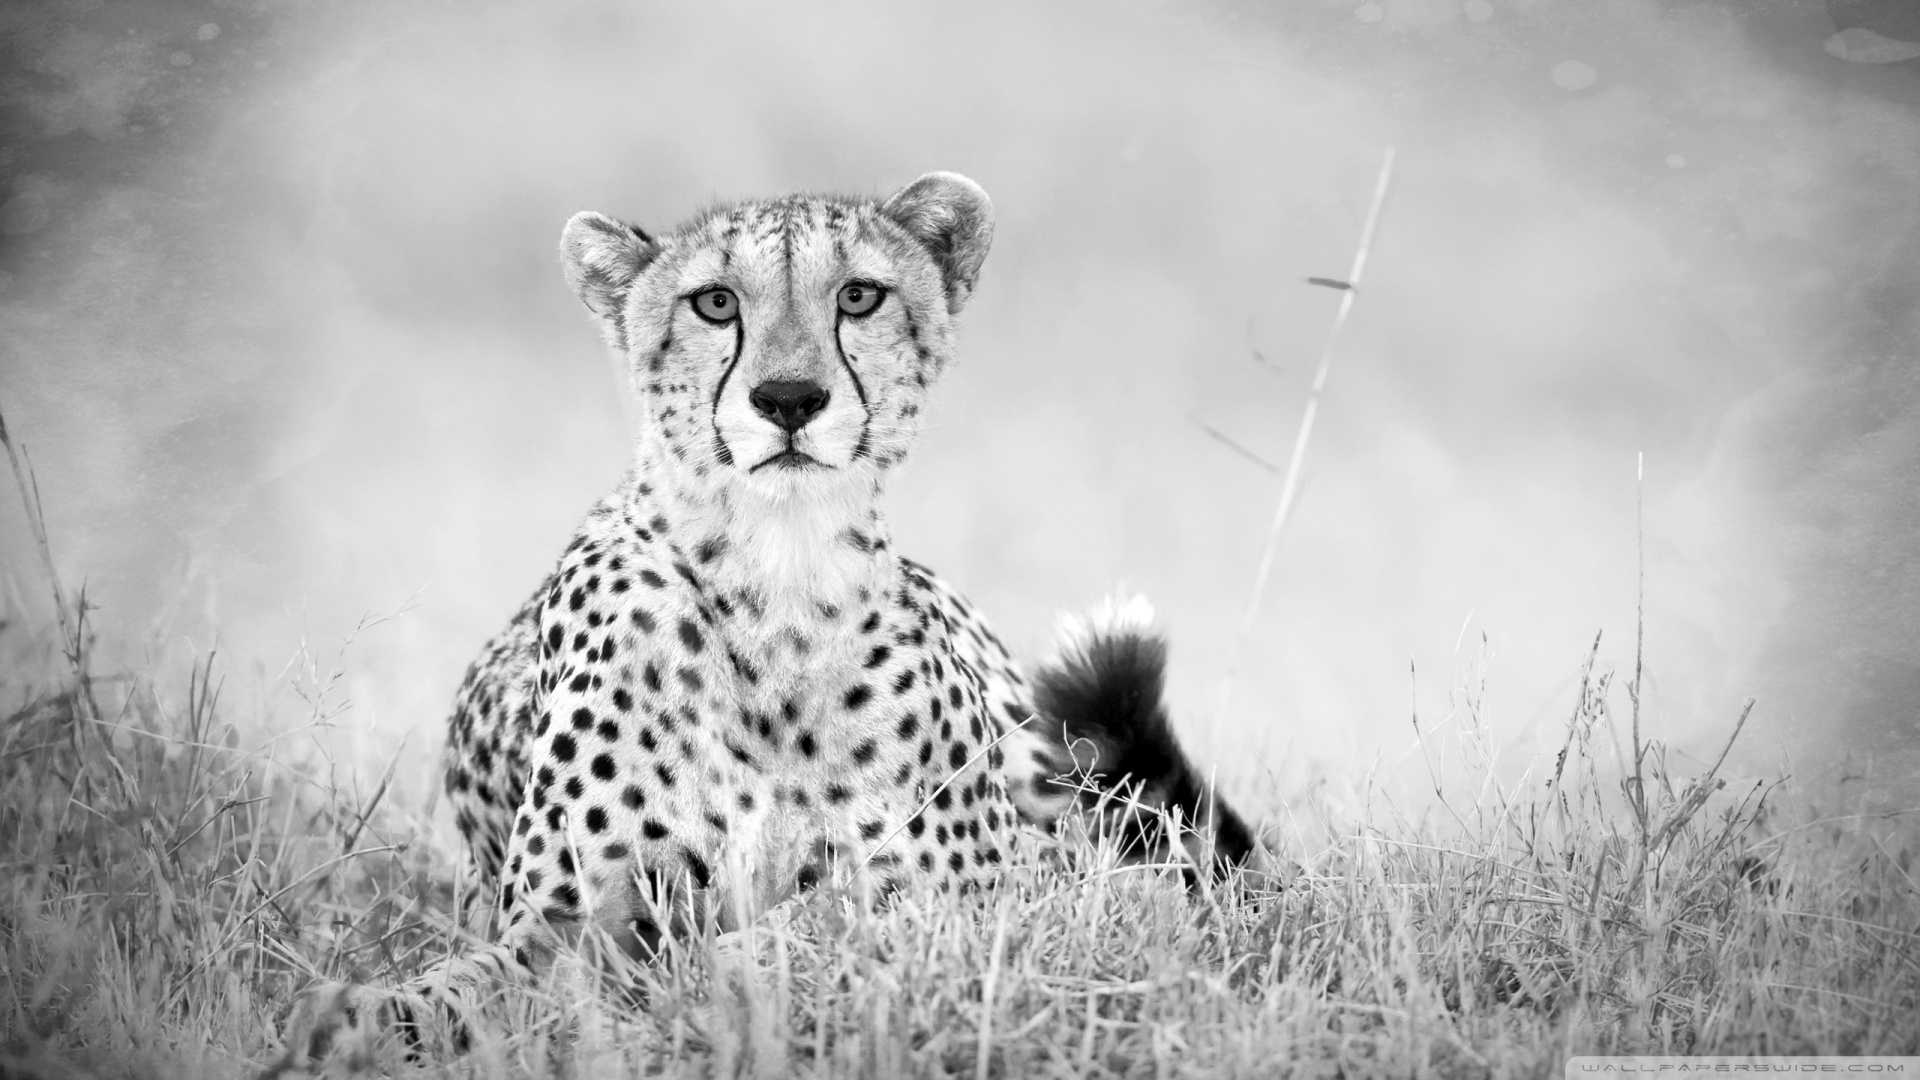 cheetah_monochrome-wallpaper-1920x1080.jpg